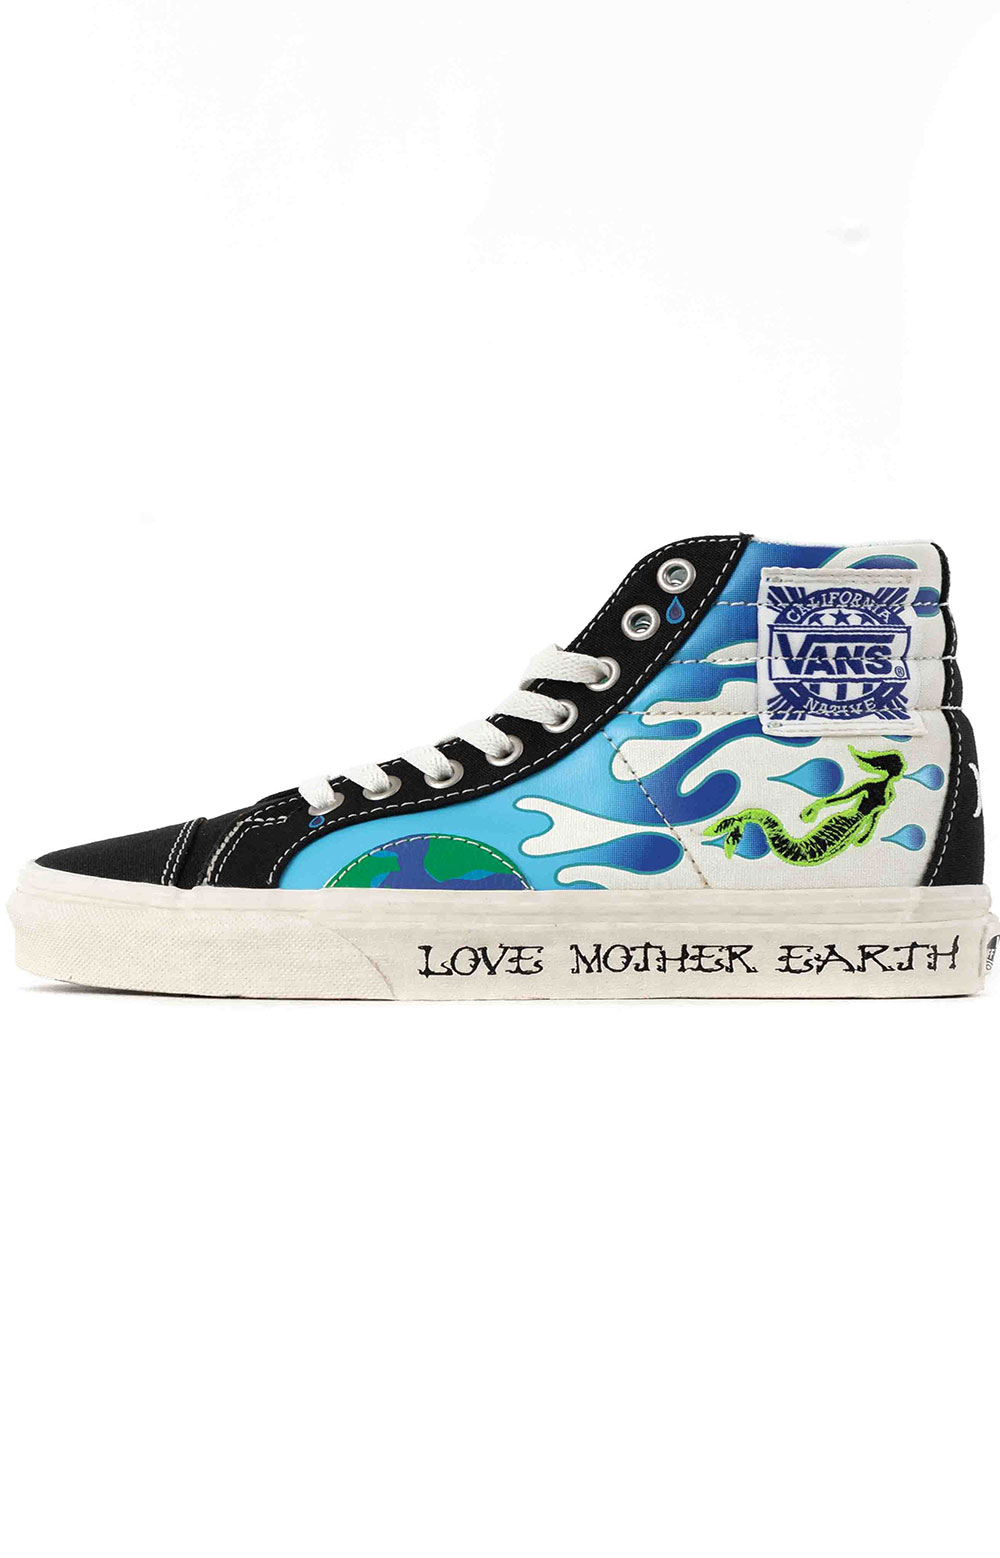 (JFIWZ2) Mother Earth Style 238 Shoes - Elements Marshmallow  8